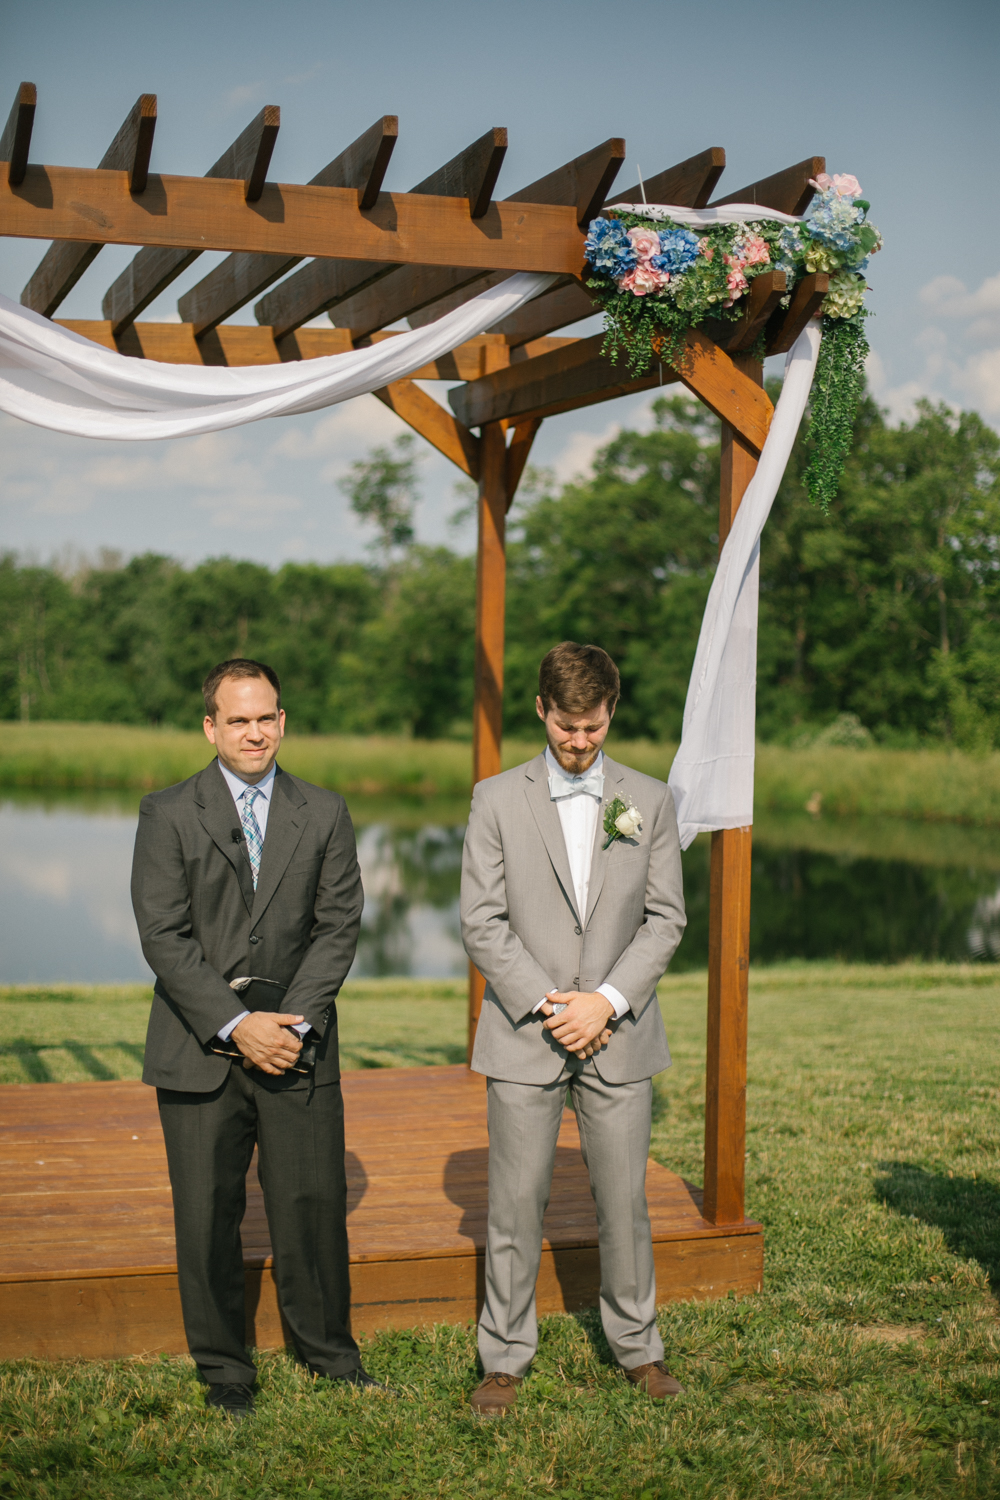 2019.06.01_CraskWedding_Starks-85.jpg